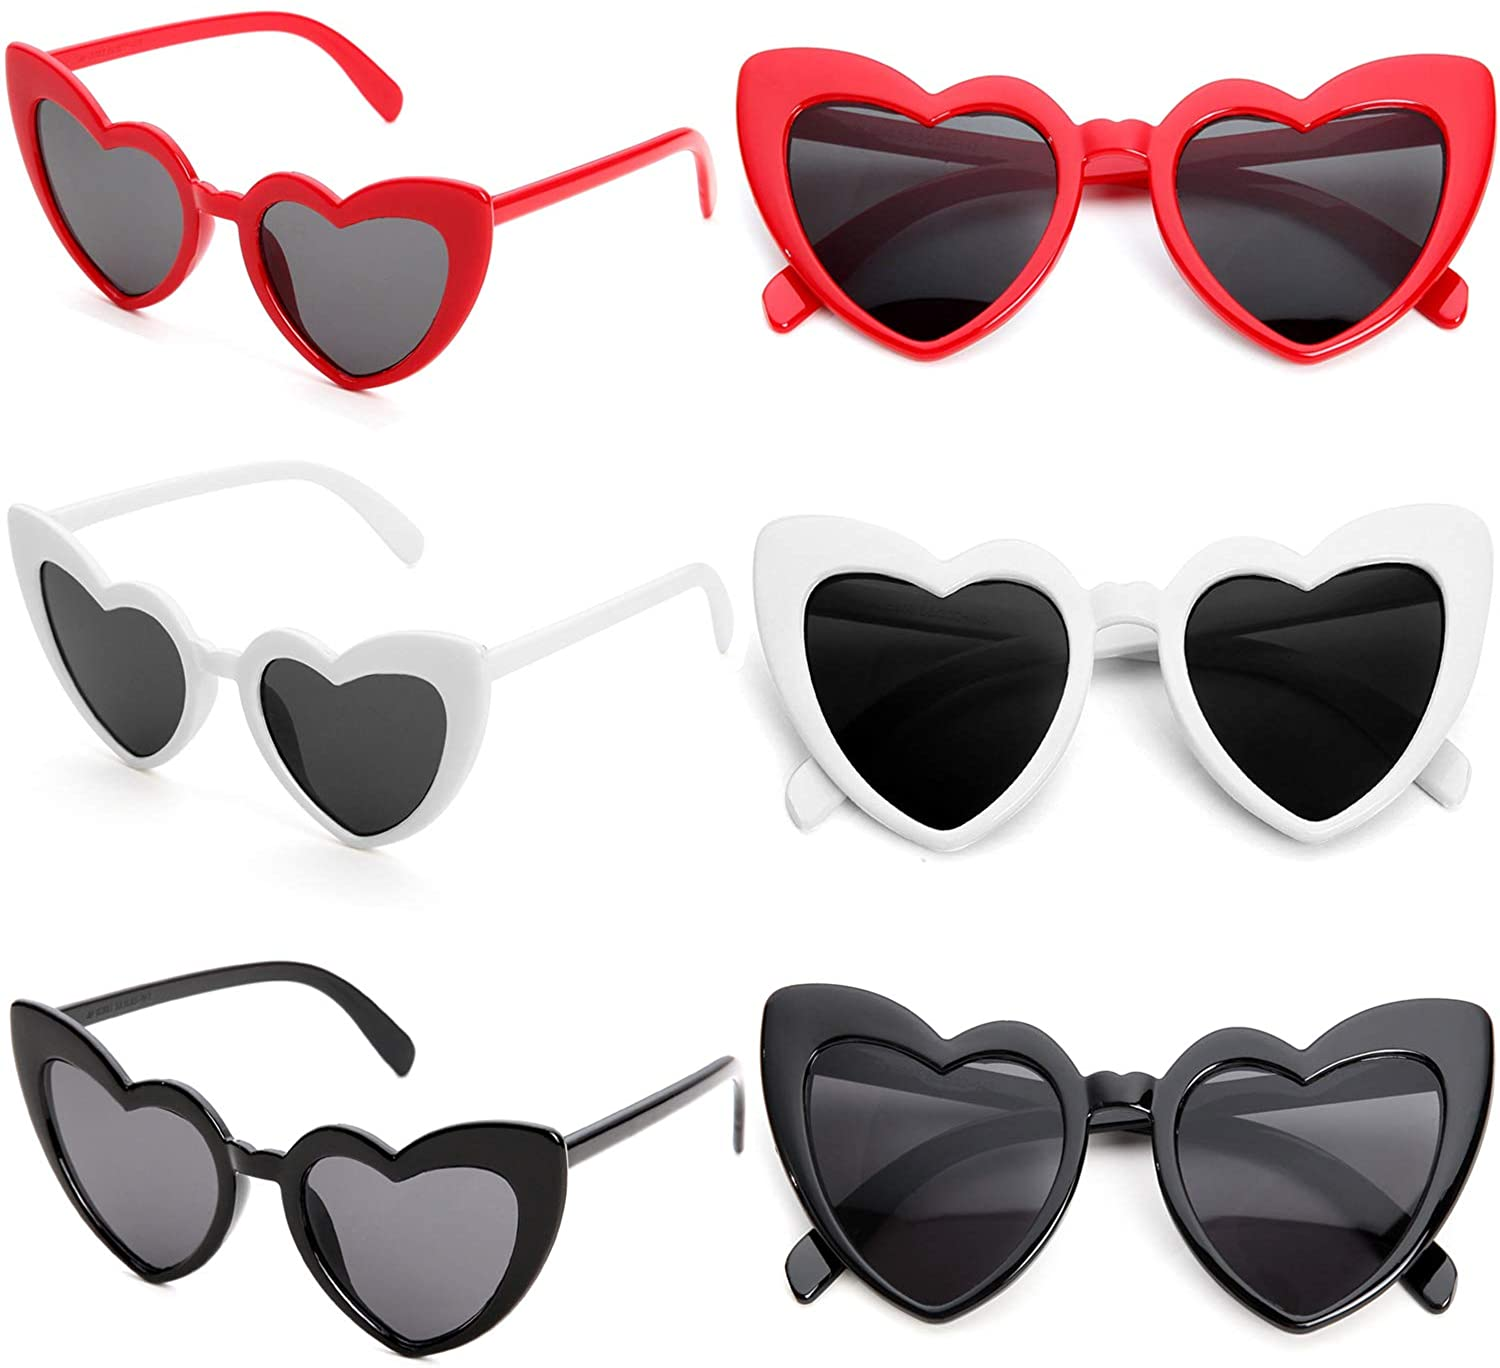 Heart Shaped Sunglasses Vintage Cat Eye Mod Style Retro Glasses Cute Eyewear for Party Favors(6 Pairs)